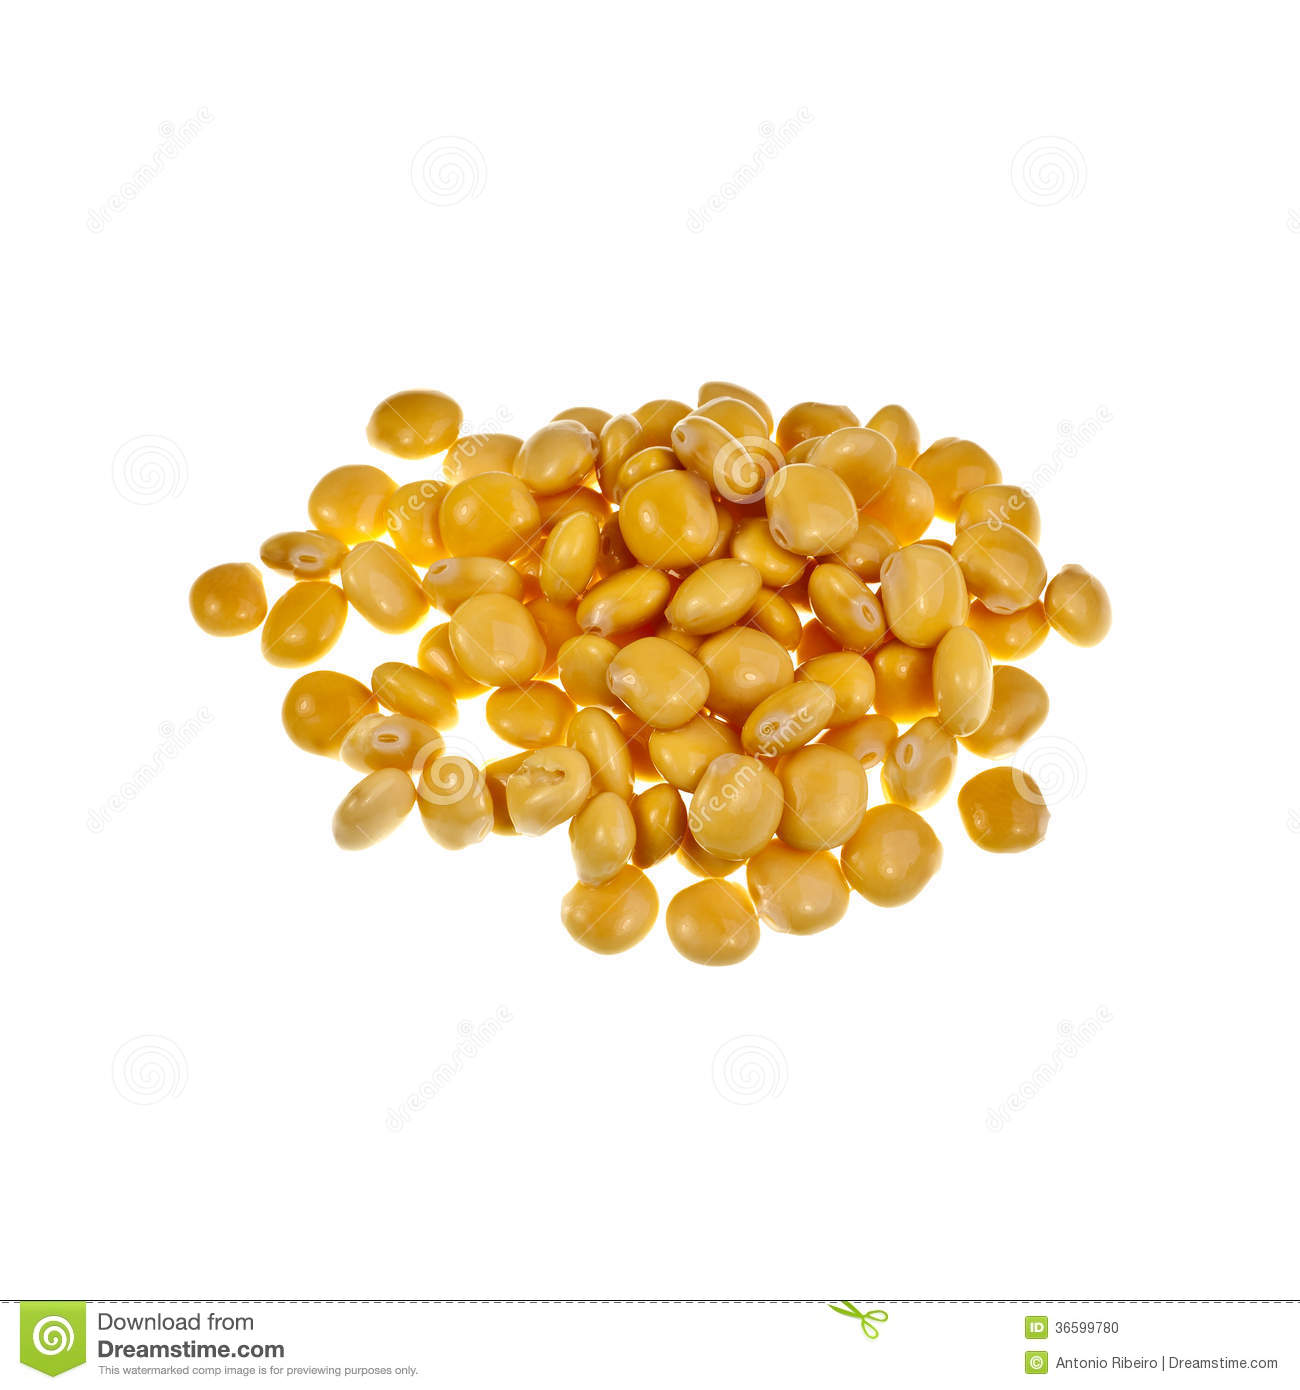 Lupin Or Lupini Beans Royalty Free Stock Photos.